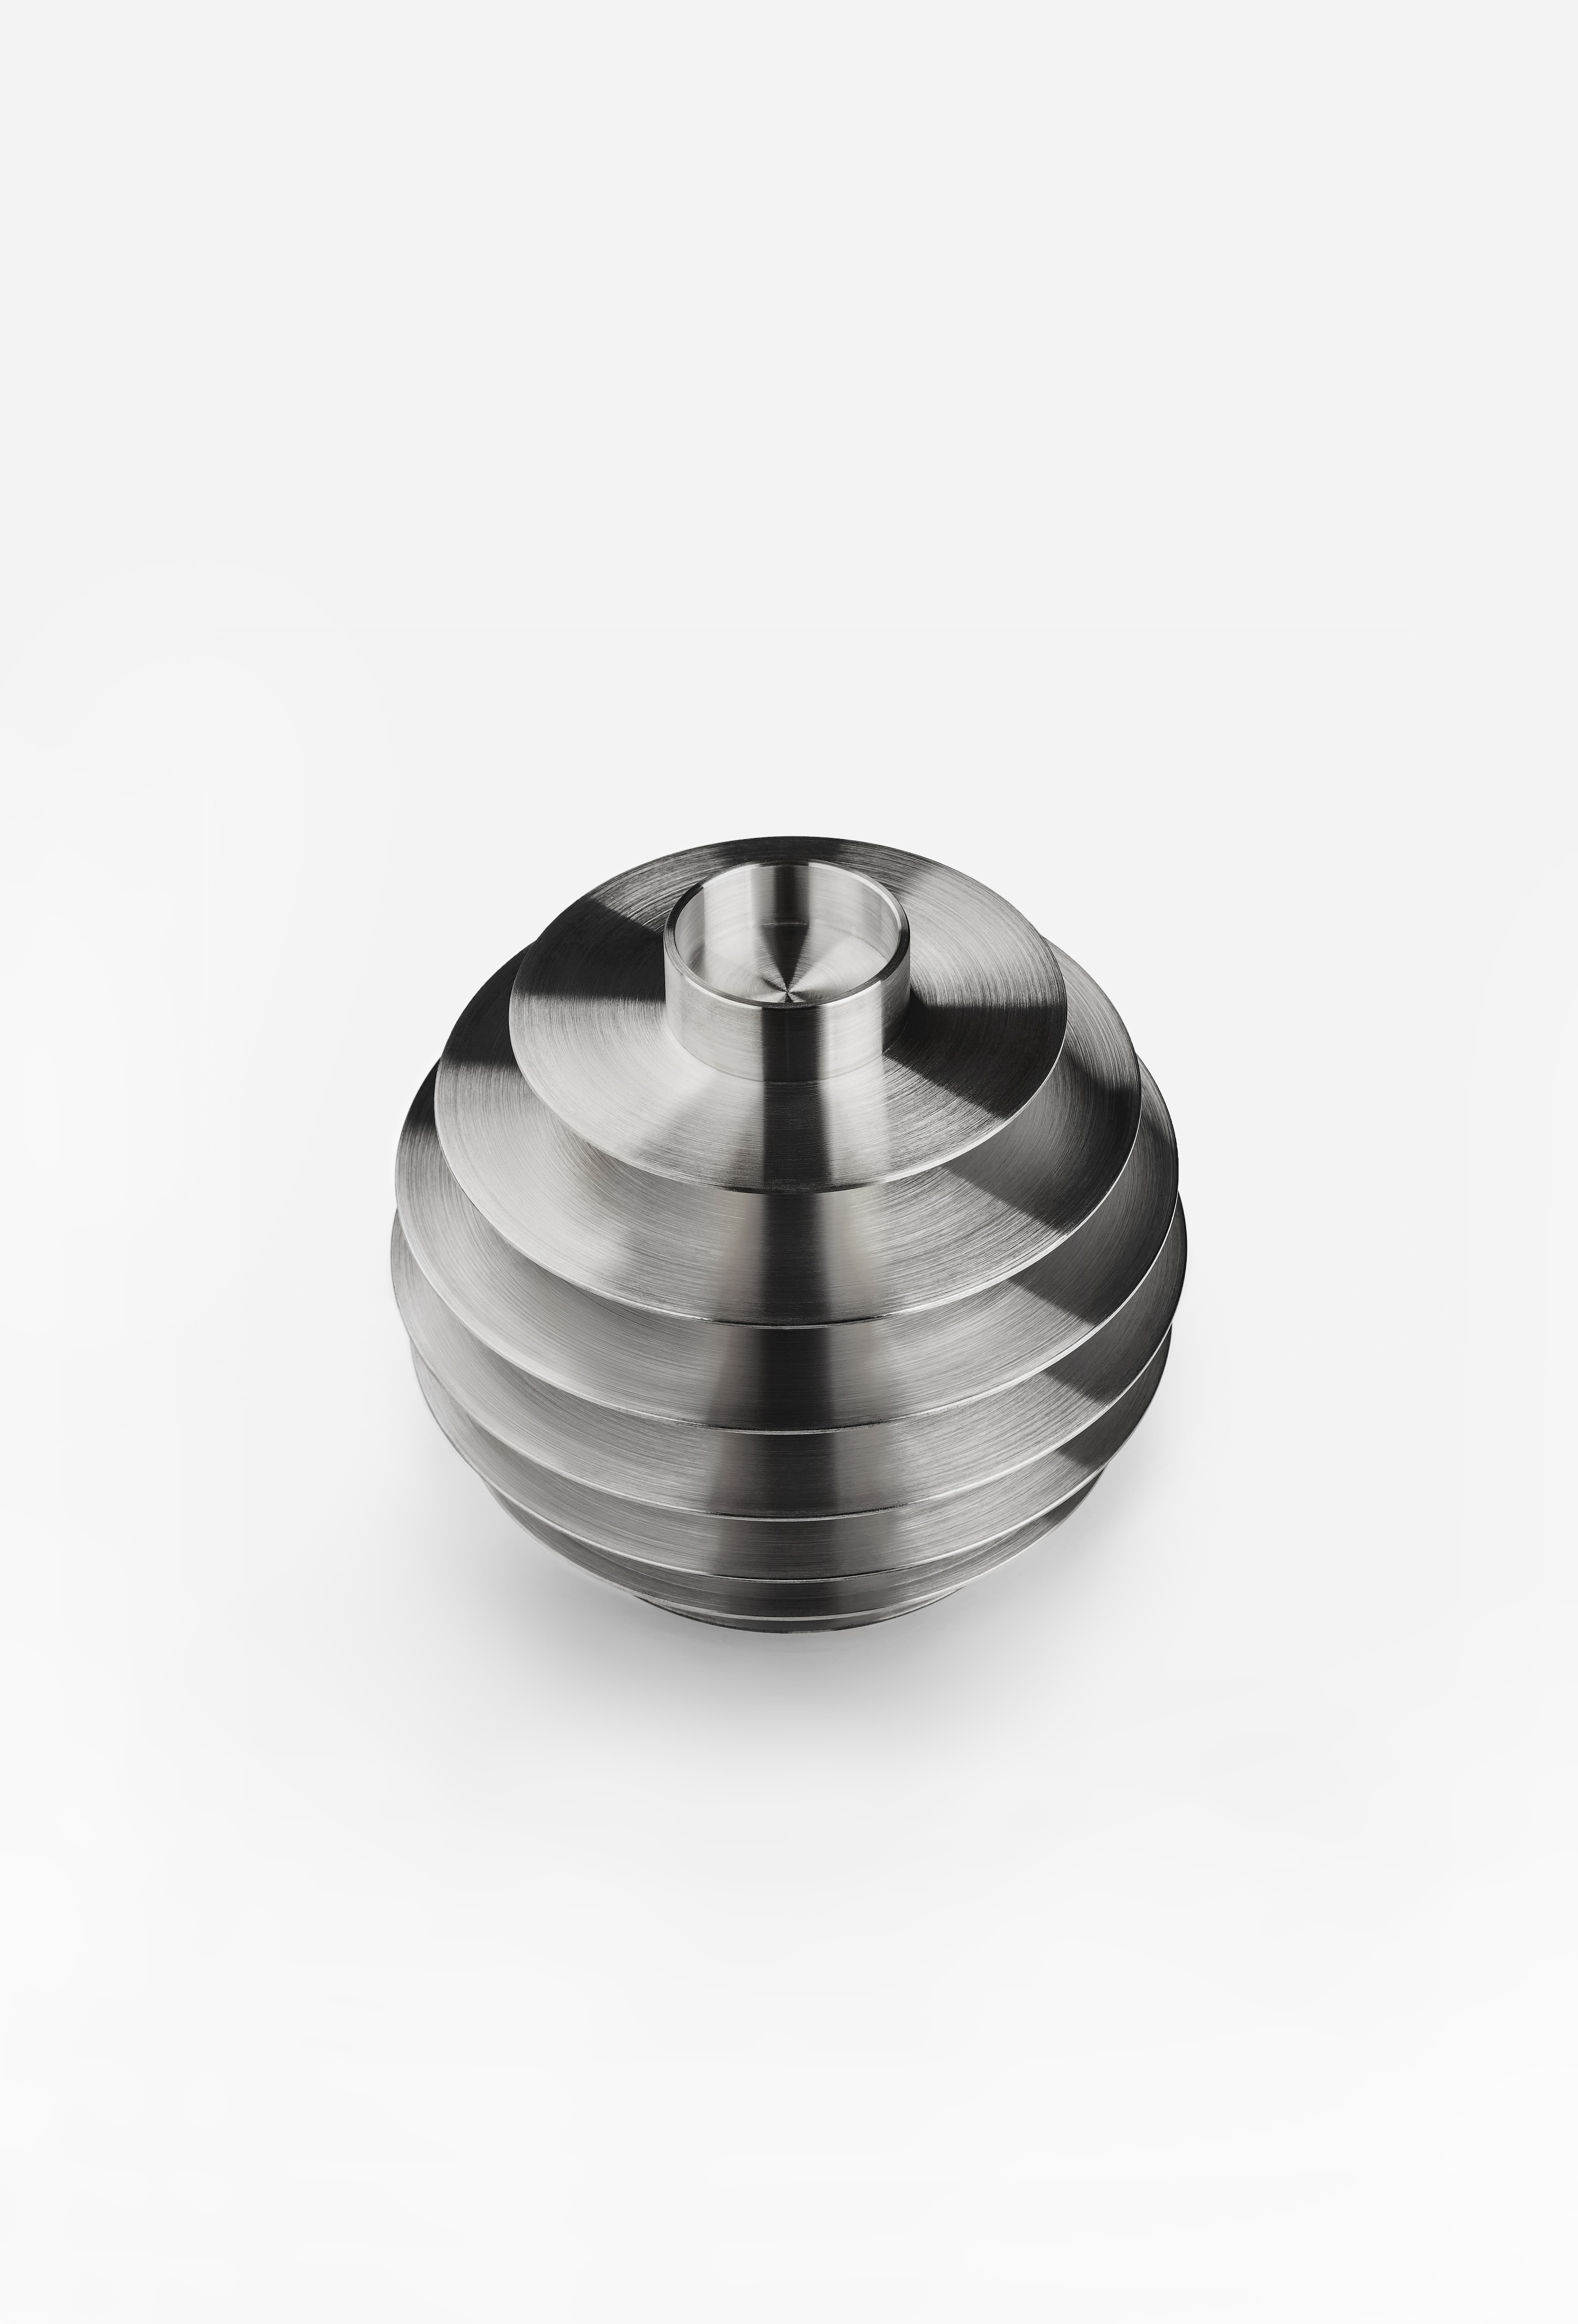 """Modern ORB Candle Holders Set CS2 Stainless Steel - ORB is a set of seven metal candle holders stacked on top of one another to form a modern spherical sculpture. Designed to be functional, each candle holder has two sides to hold long and tealight candles. The collection comes in solid brass and stainless steel making it look charming in any interior setting as a series of seven candle holders or as a single sculpture.  """"I think the universe is pure geometry - basically, a beautiful shape twisting around and dancing over space-time."""" - A. G. Lisi.  The name of the collection, the shape of the whole sculpture and the number candle holders are all inspired by the mystifying universe. Featured by immense and bizarre nature, it has always attracted people at all times. A celestial sphere, characterized by the ideal circular shape, is also manifested in the company name — NOOM — that is semantically associated with the reverse side of the Moon. 